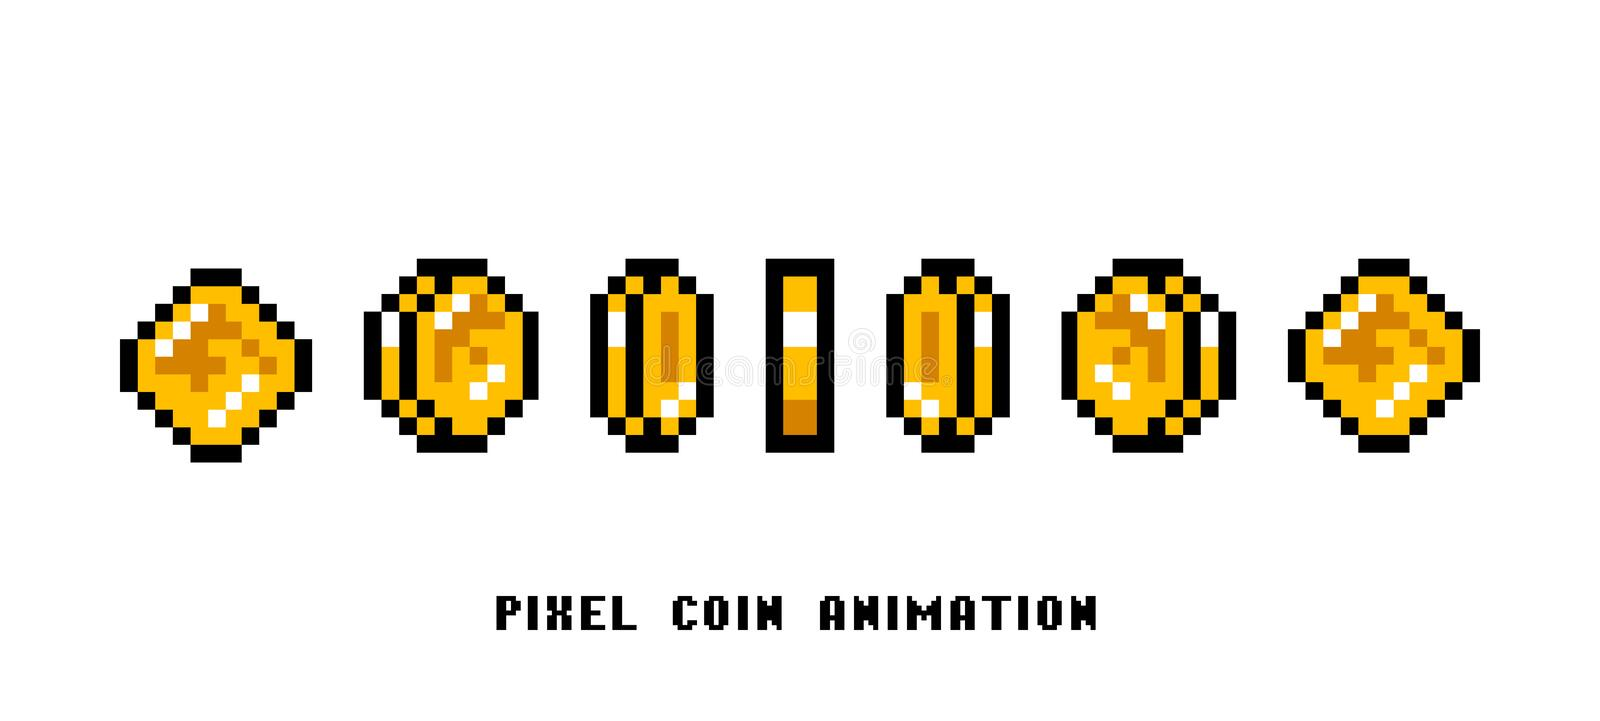 Animation of coins. Pixel art 8 bit objects. Set of icons for vintage computer video arcades. Retro game assets. The vector illustration